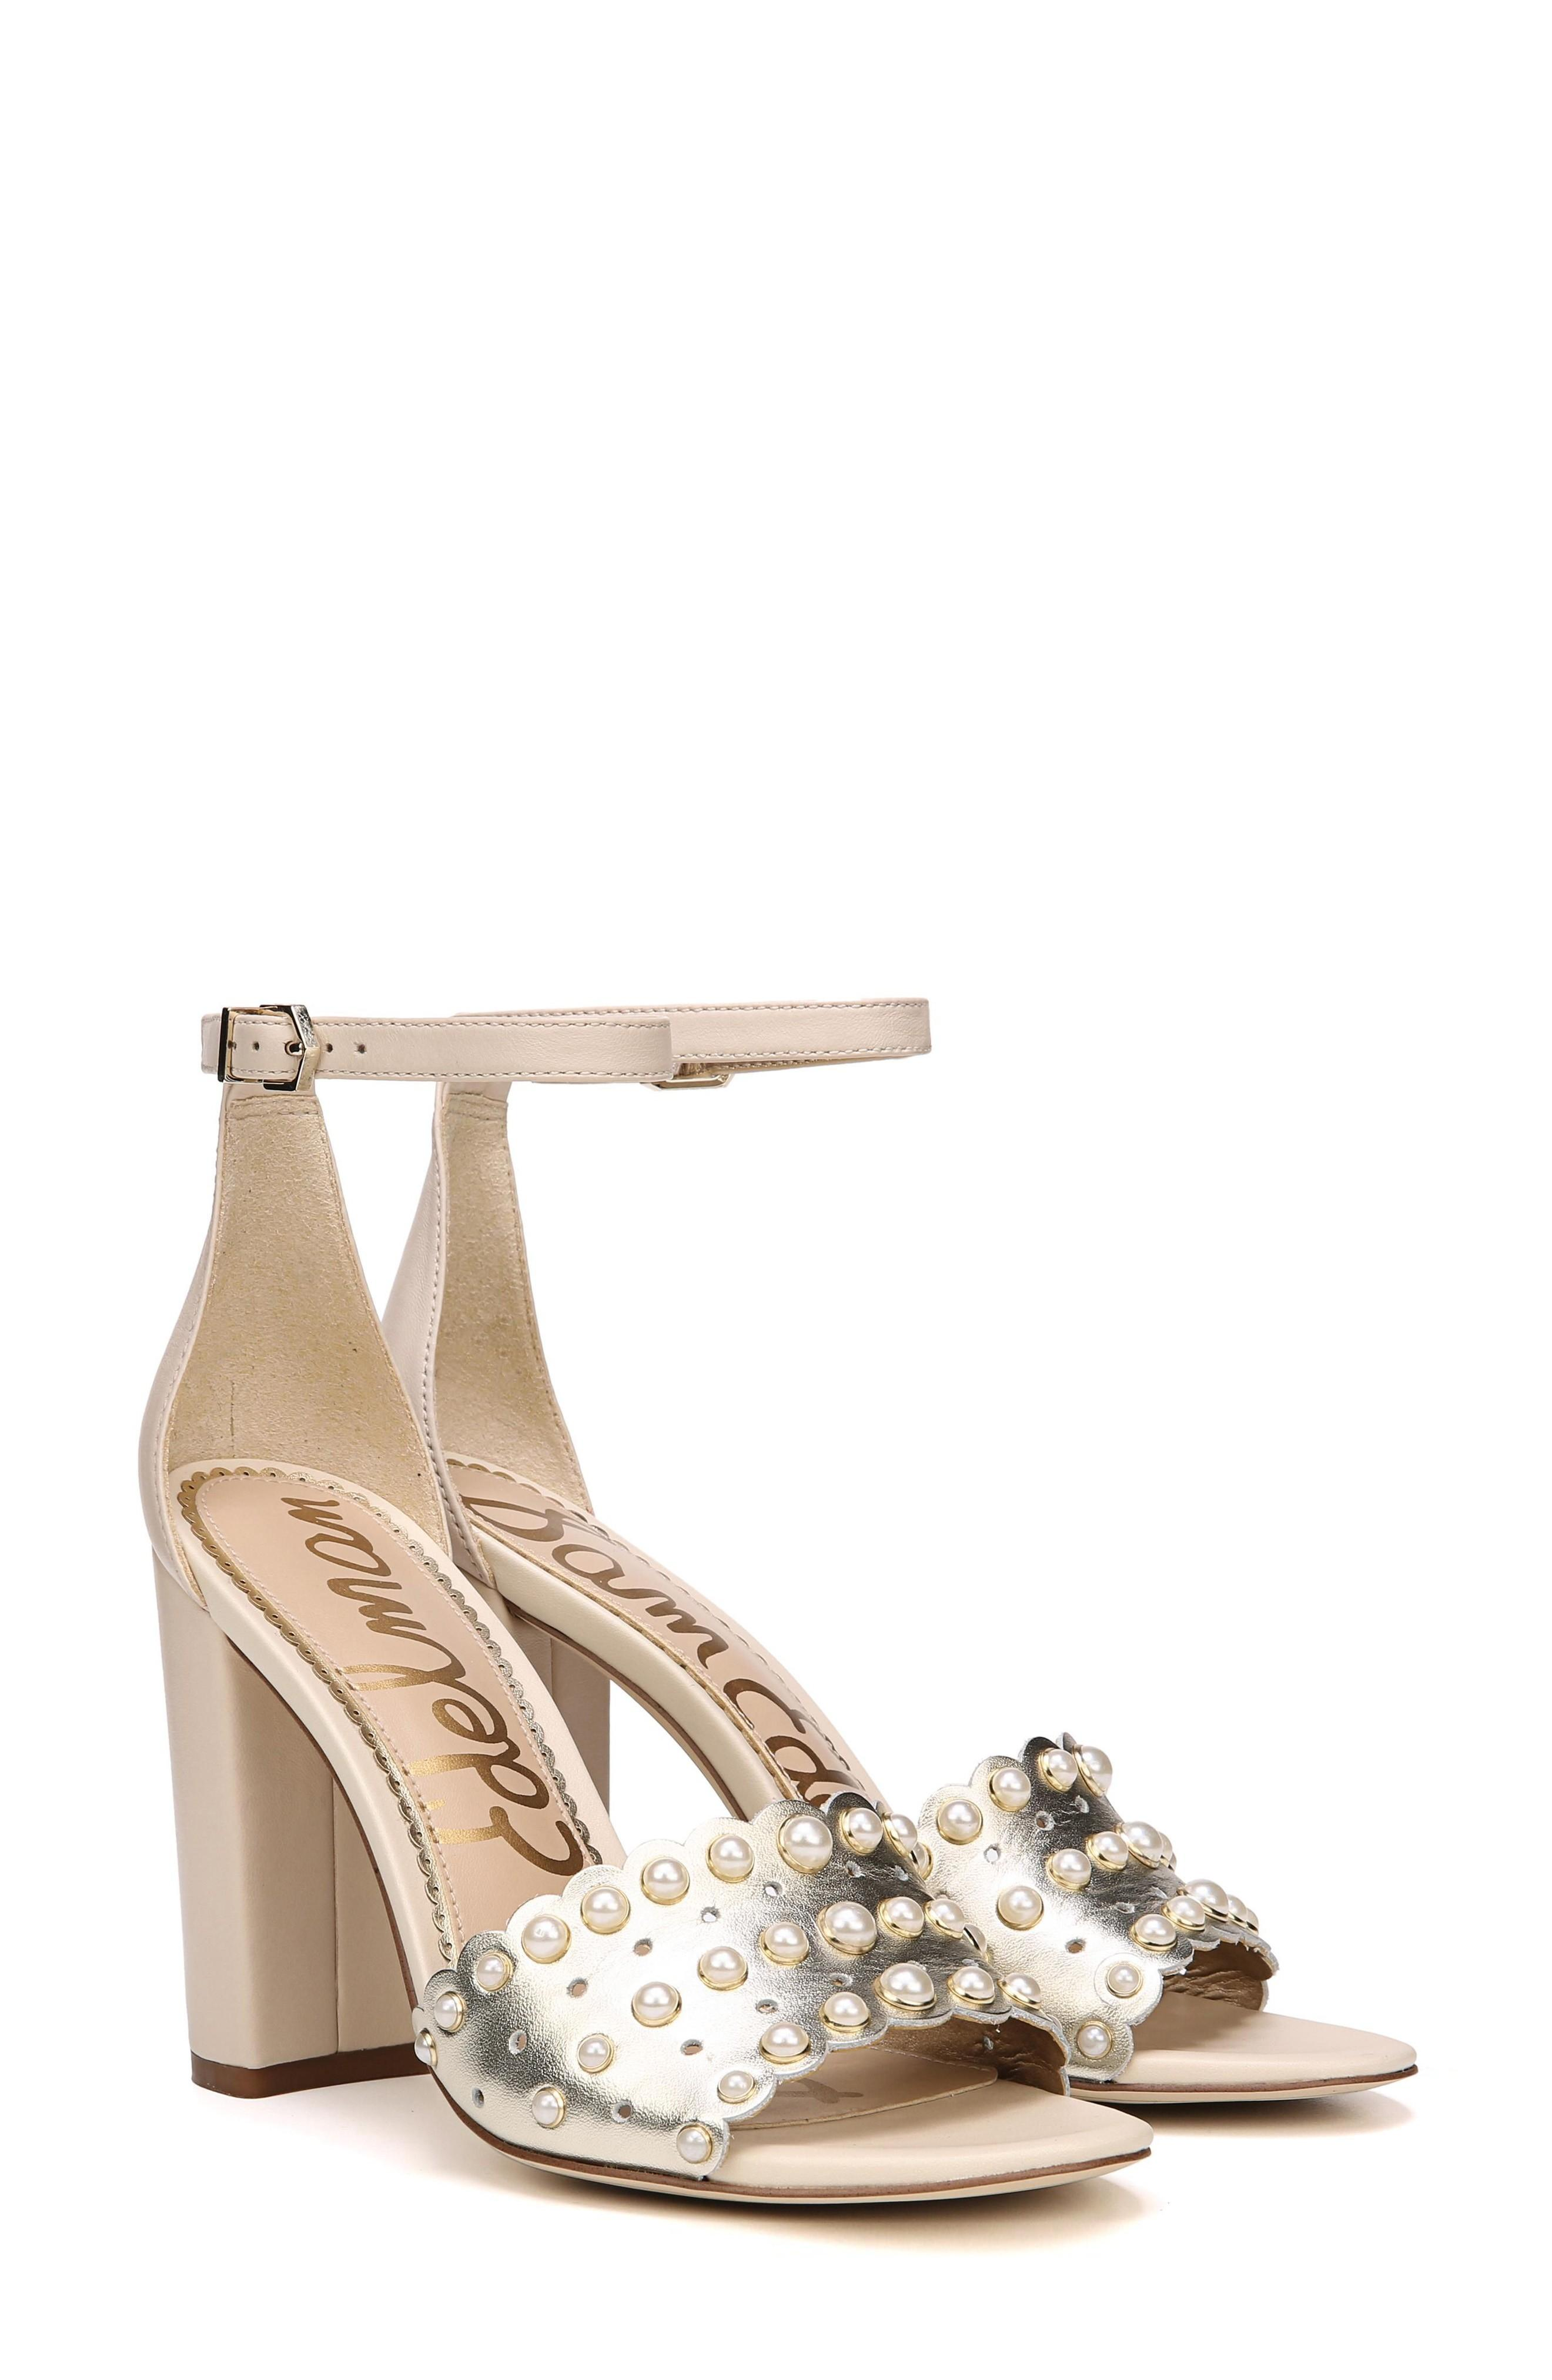 cf8bcd5f4 ... block-heel sandals that pair a slim ankle strap with scalloped leather  straps and polished studs. Style Name  Sam Edelman Yaria Studded Block Heel  ...